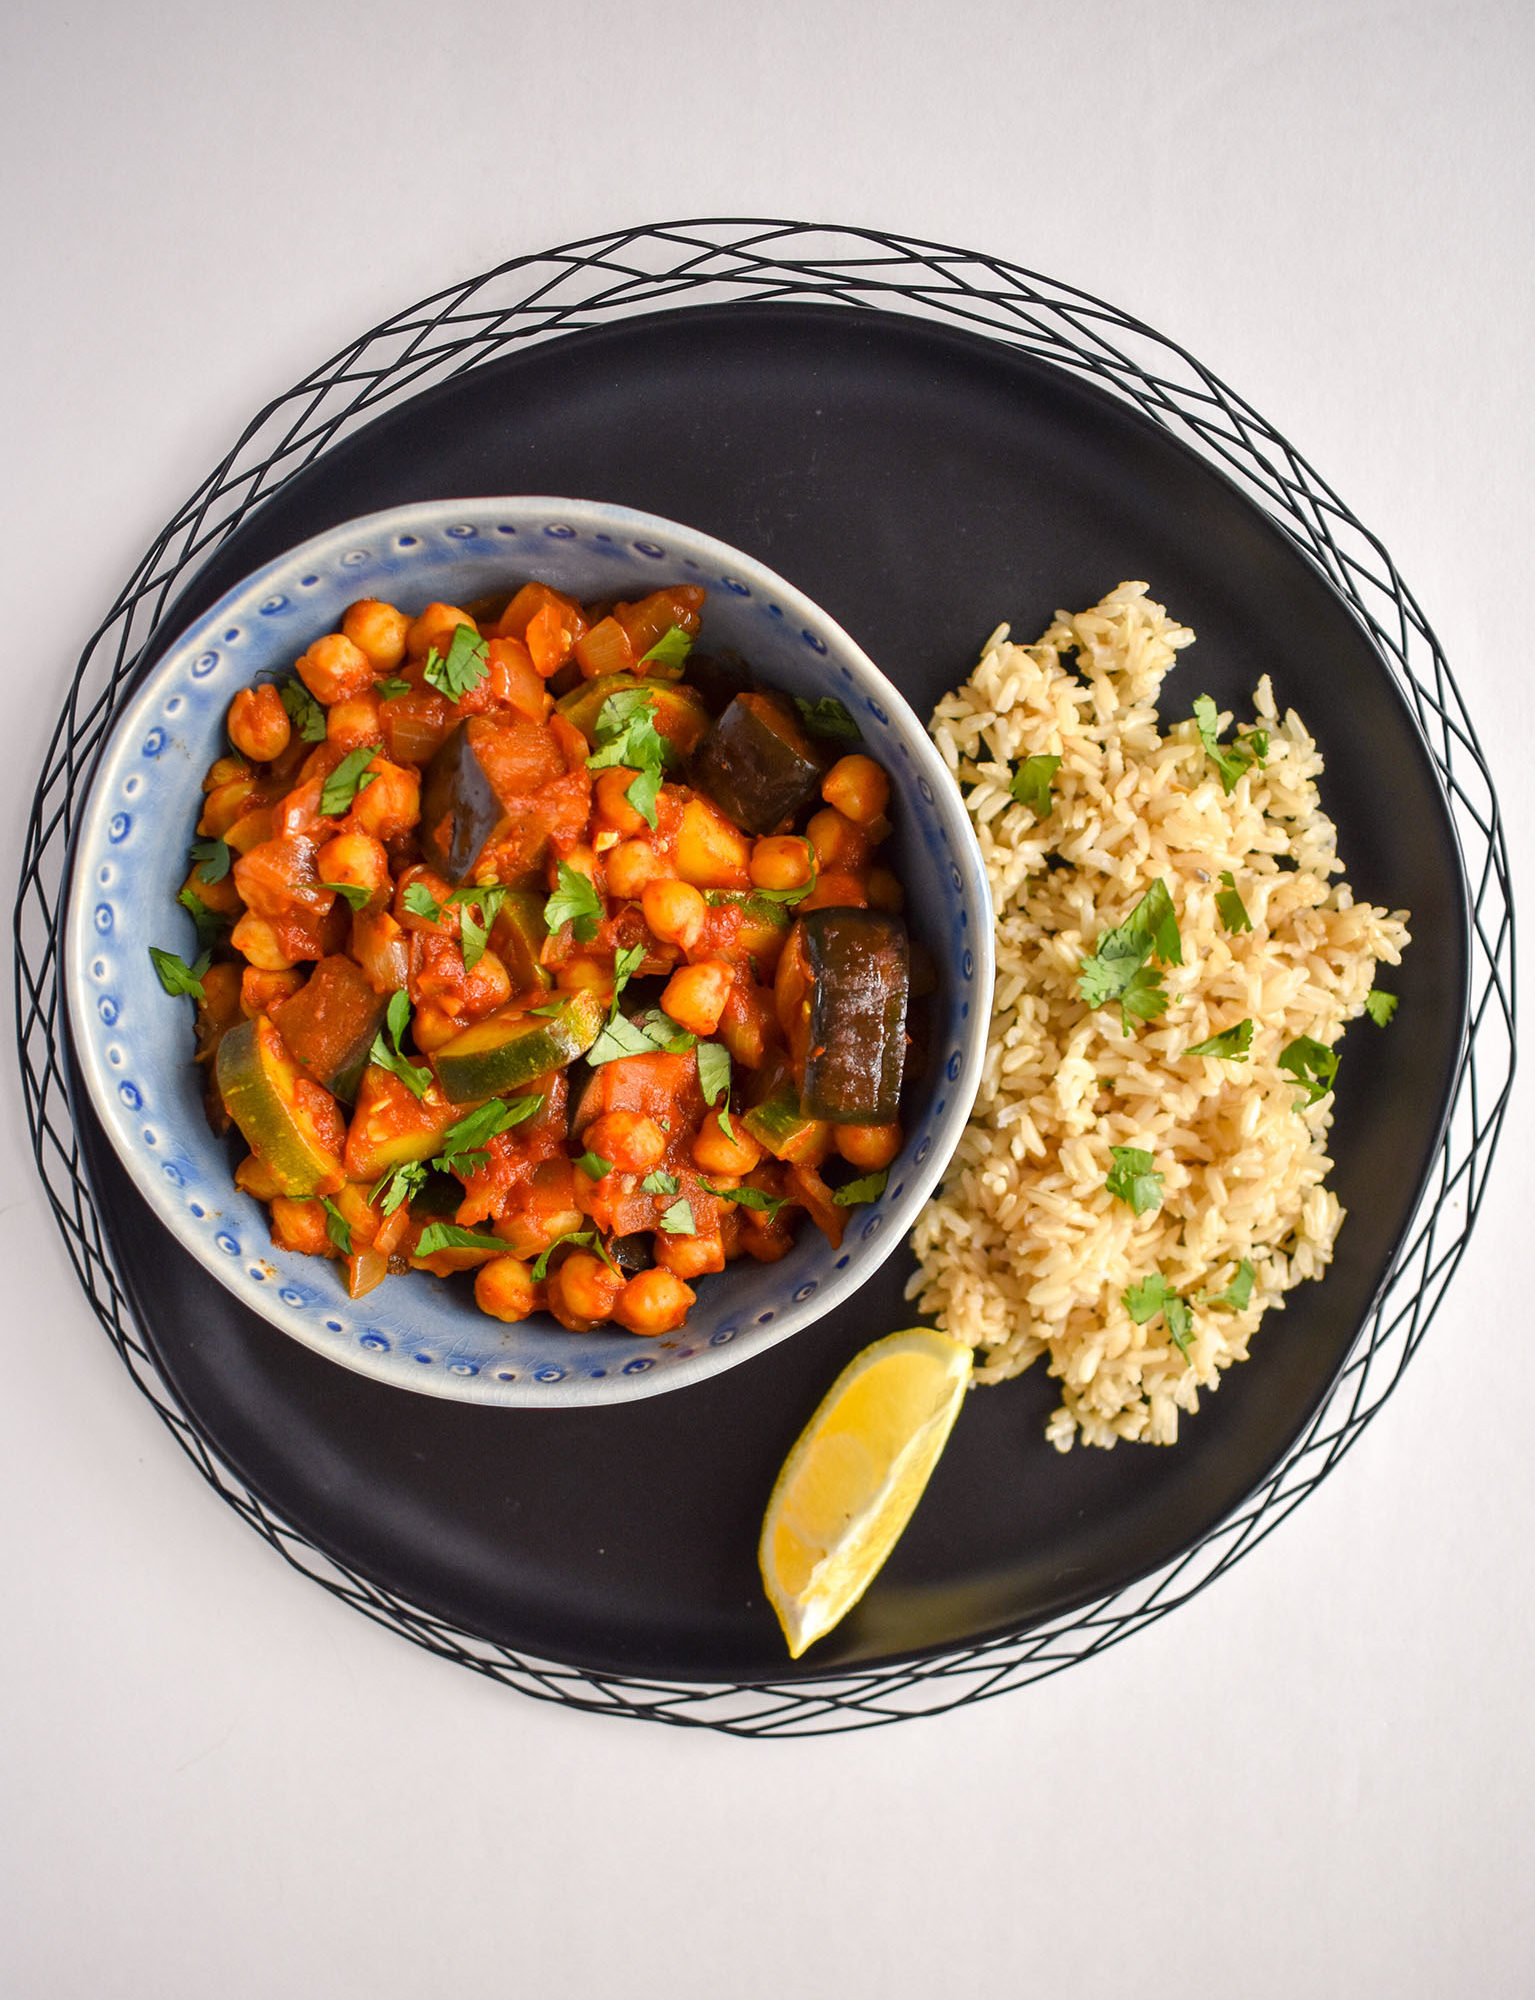 Chana masala with eggplant and zucchini and a side of rice- 3 summer ingredients and 3 meals.